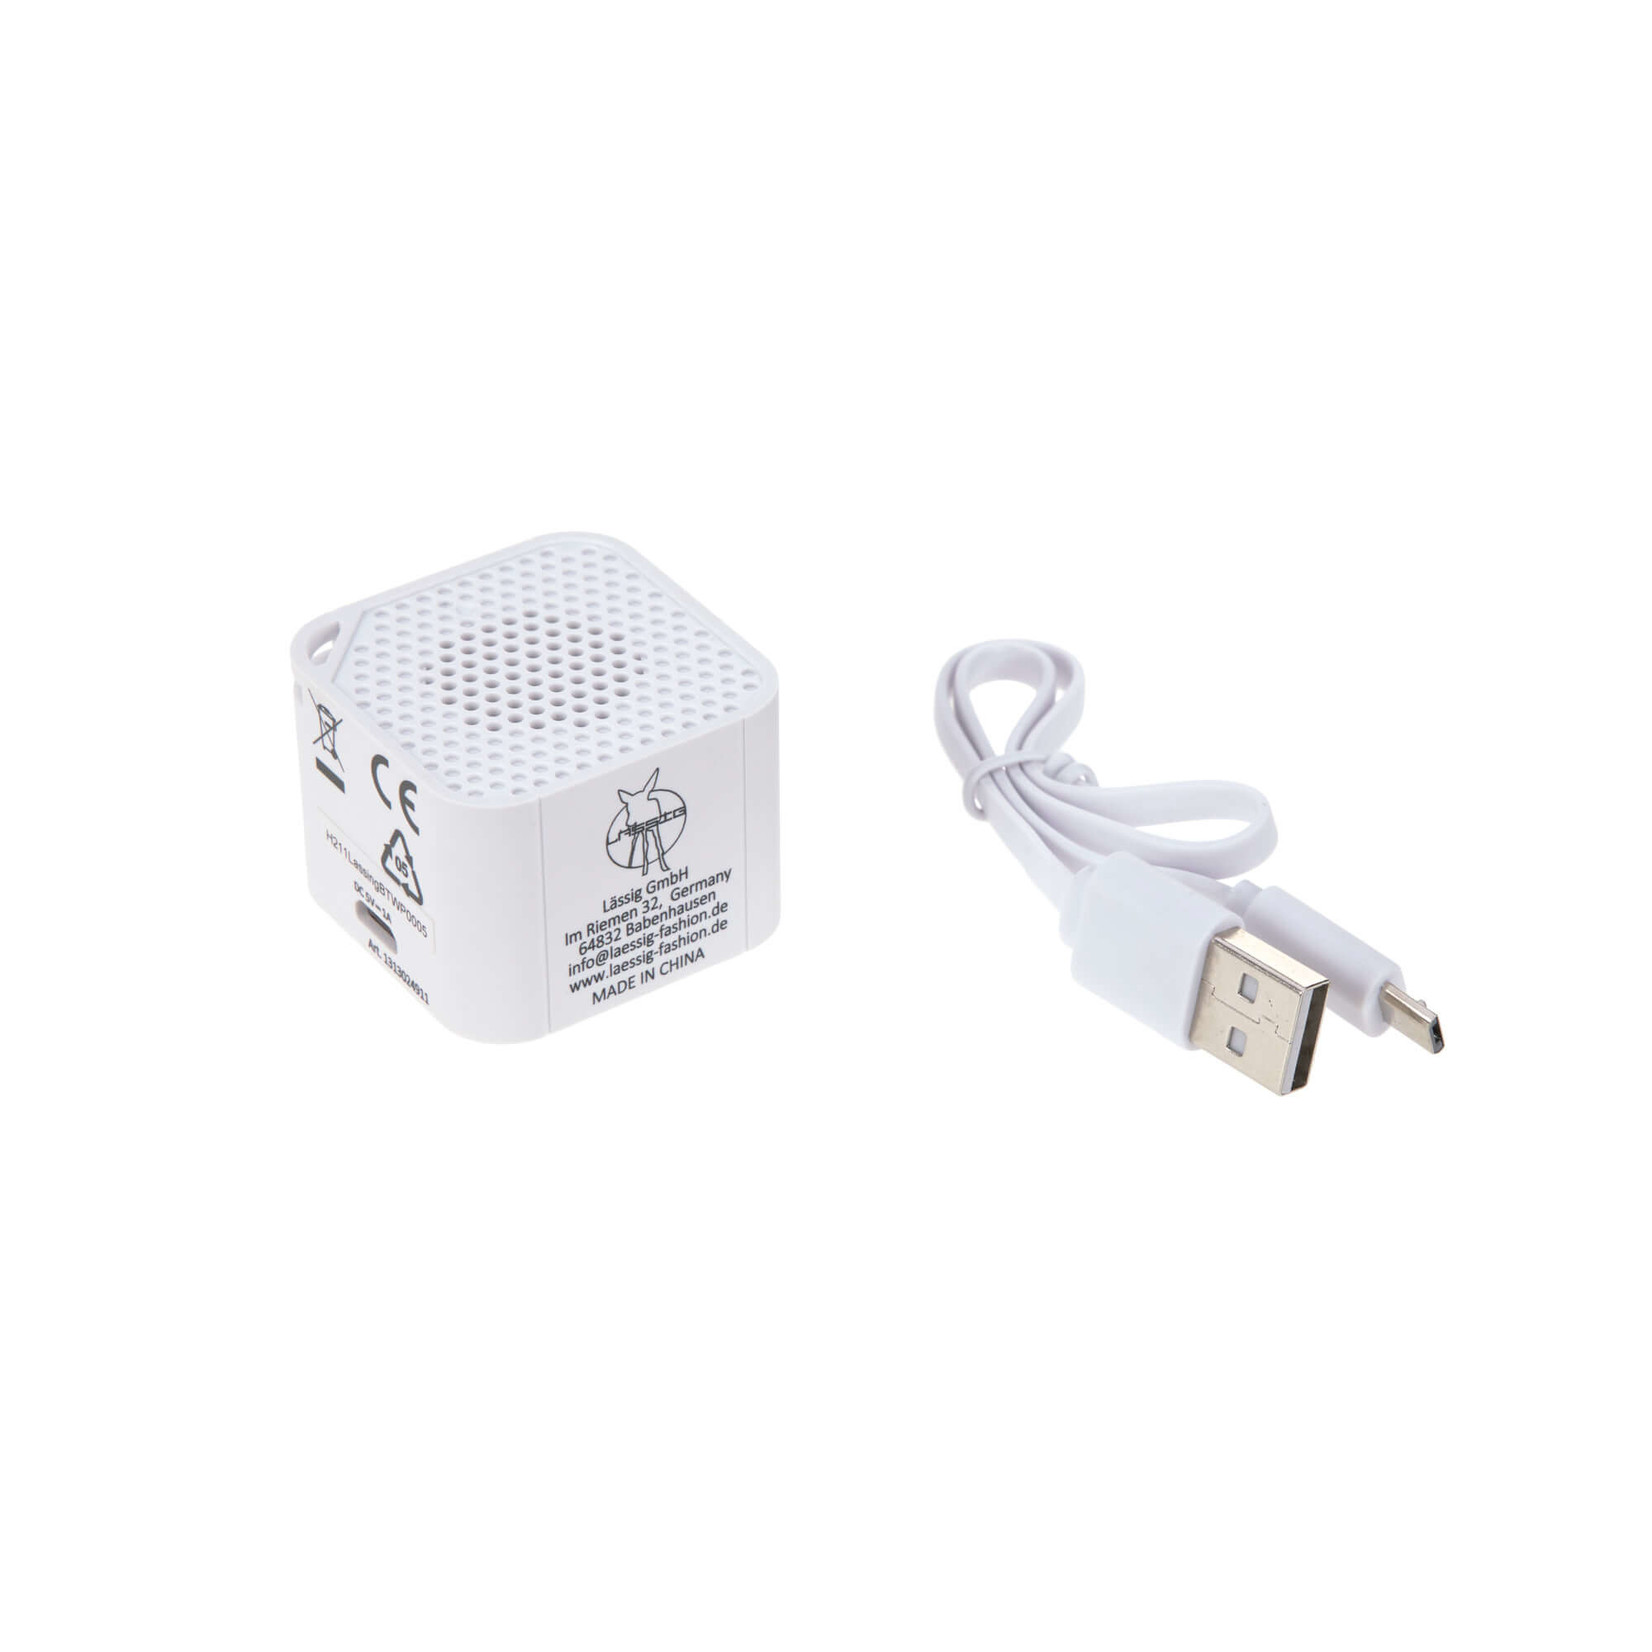 Lässig Digital Music Box with Bluetooth Speaker and USB Cable Tiny Farmer Goose